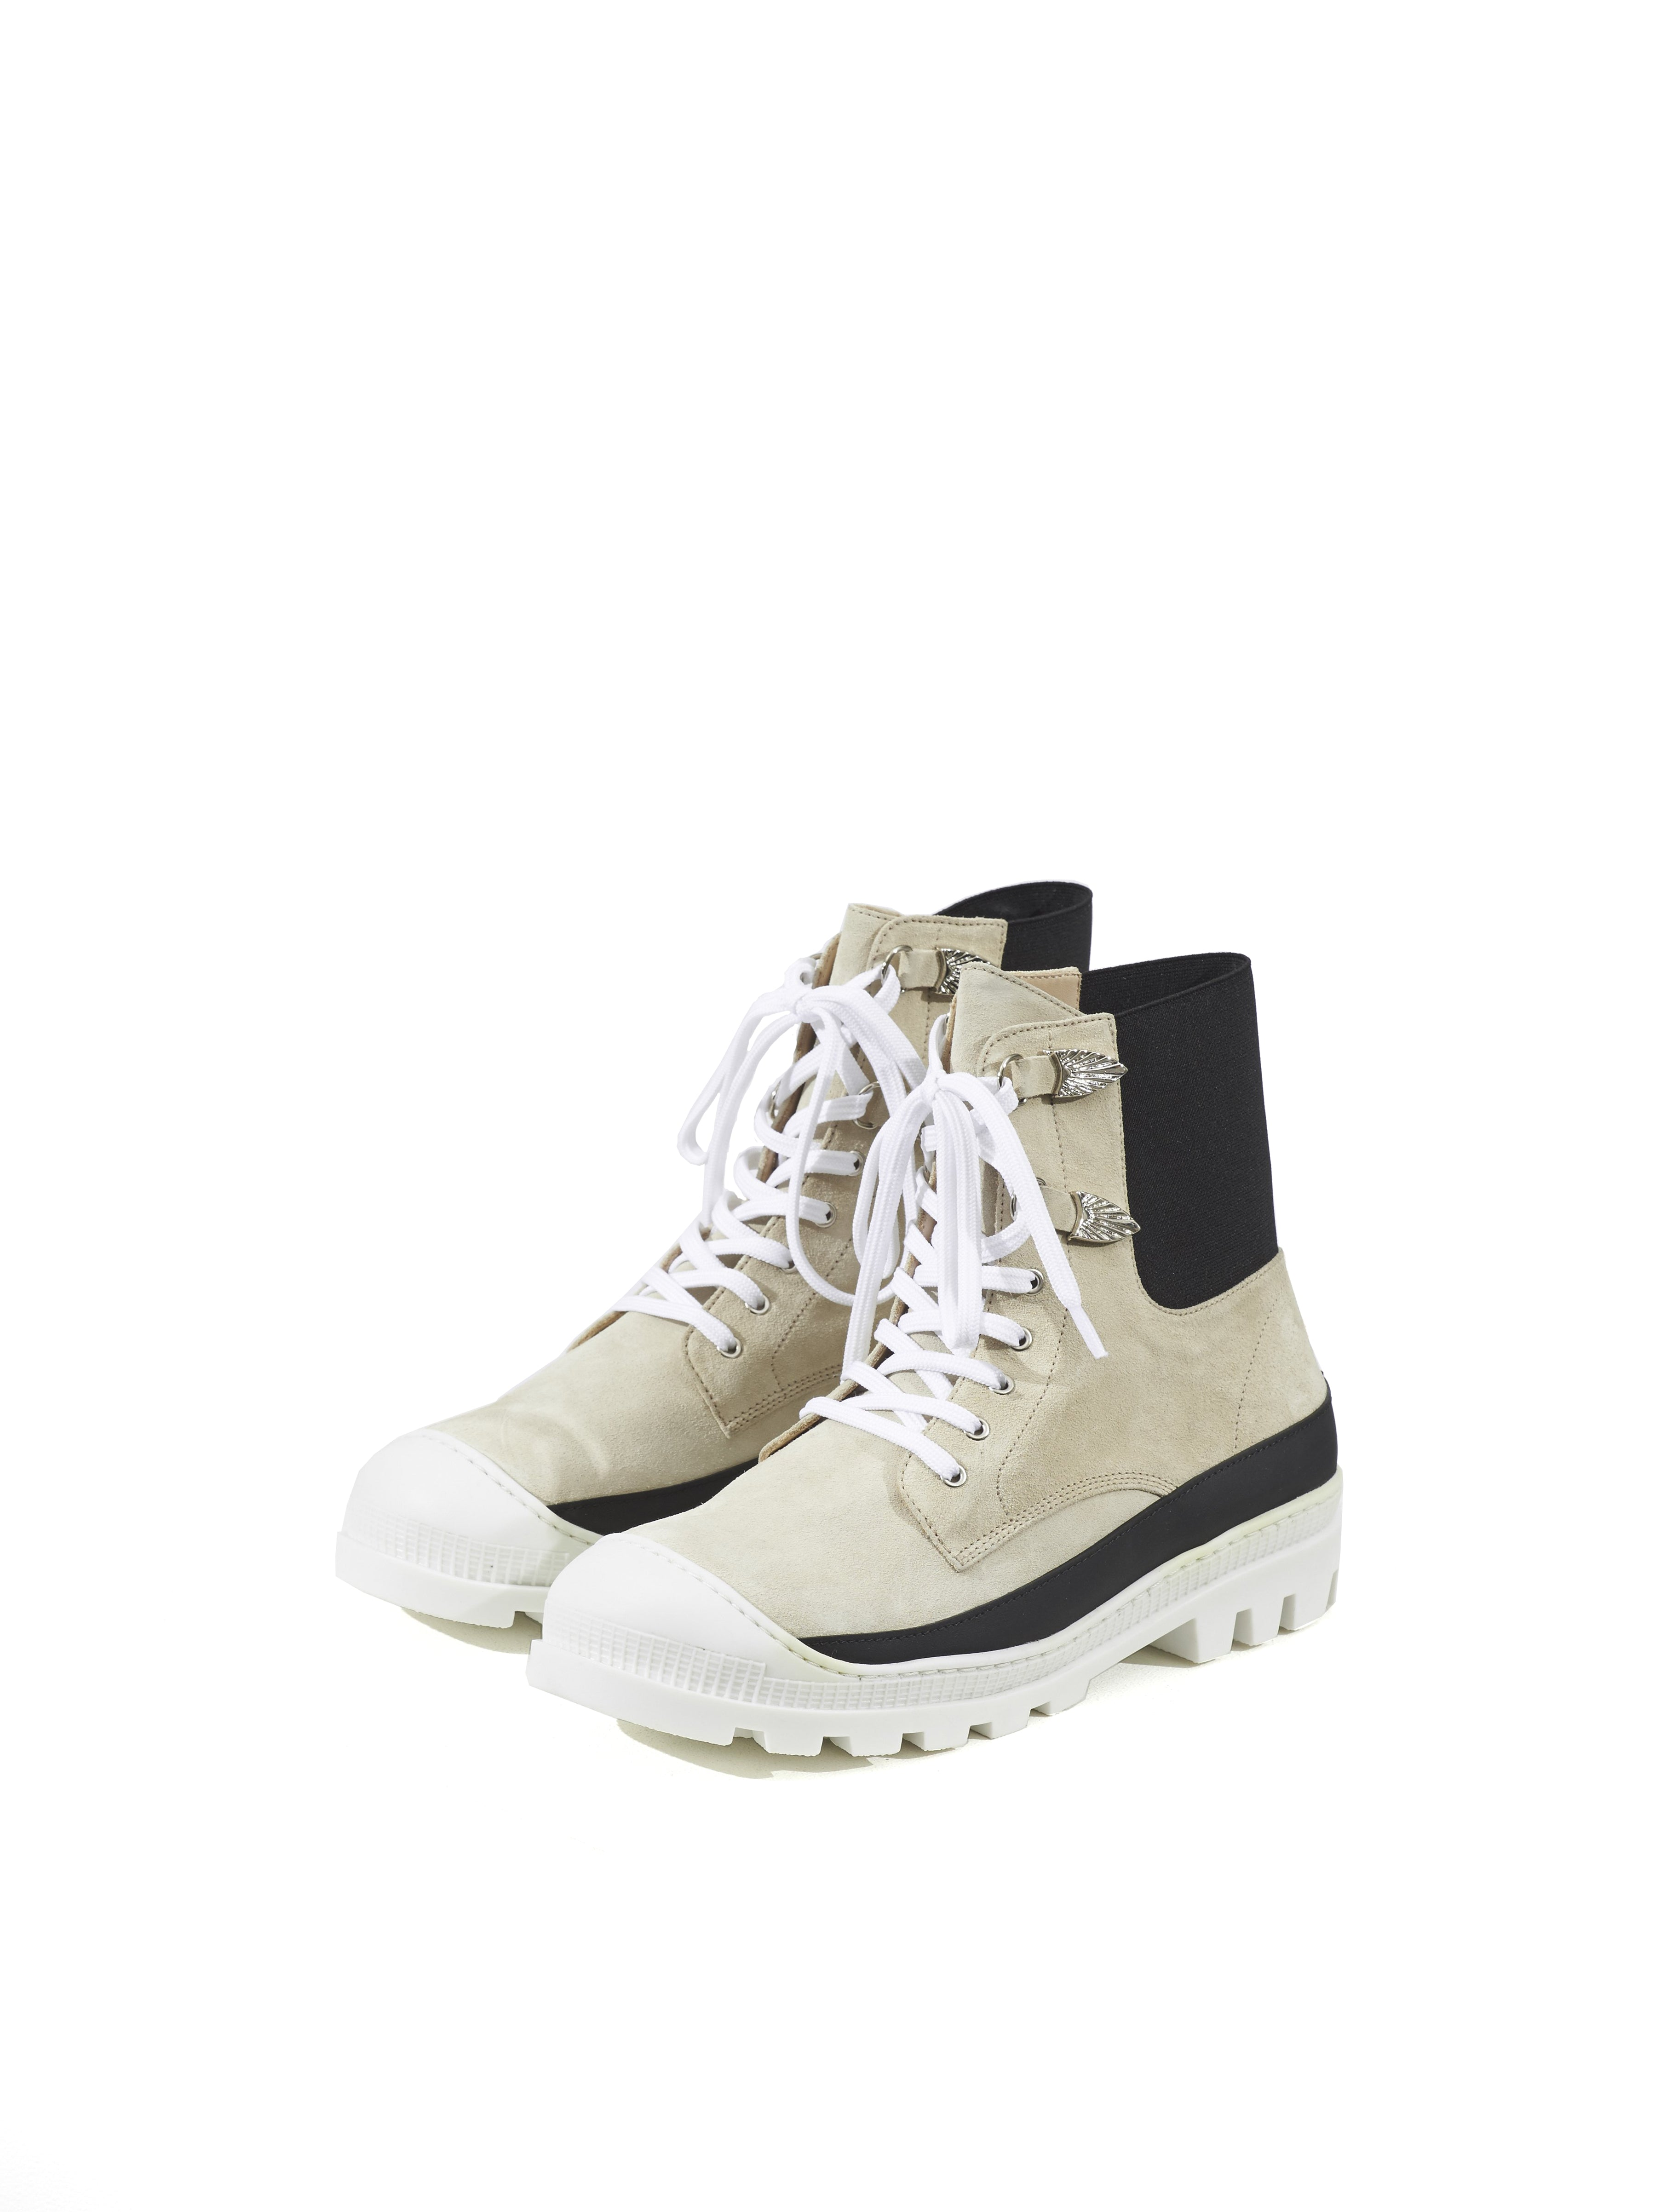 Off White Suede Boot